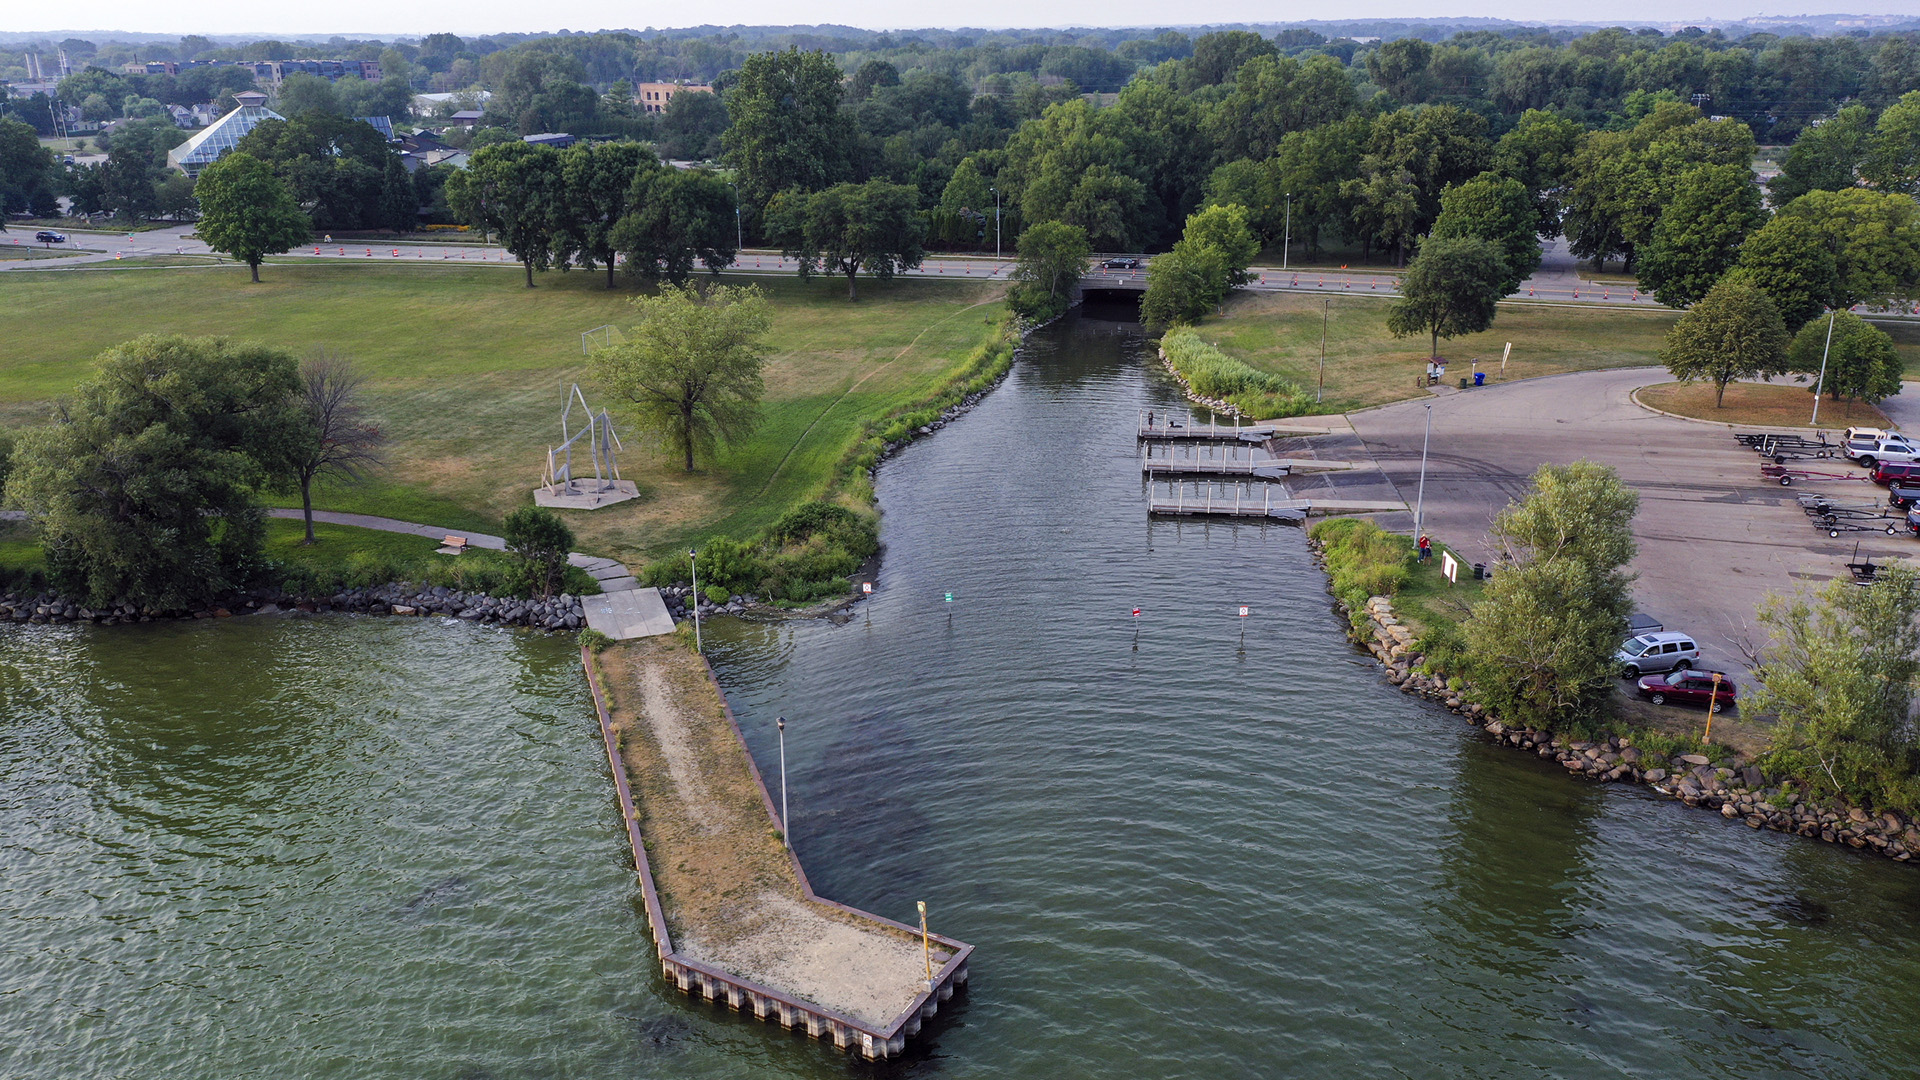 An aerial image shows a creek mouth on a lake in the middle of a park, with docks, boat launches and and a parking lot.